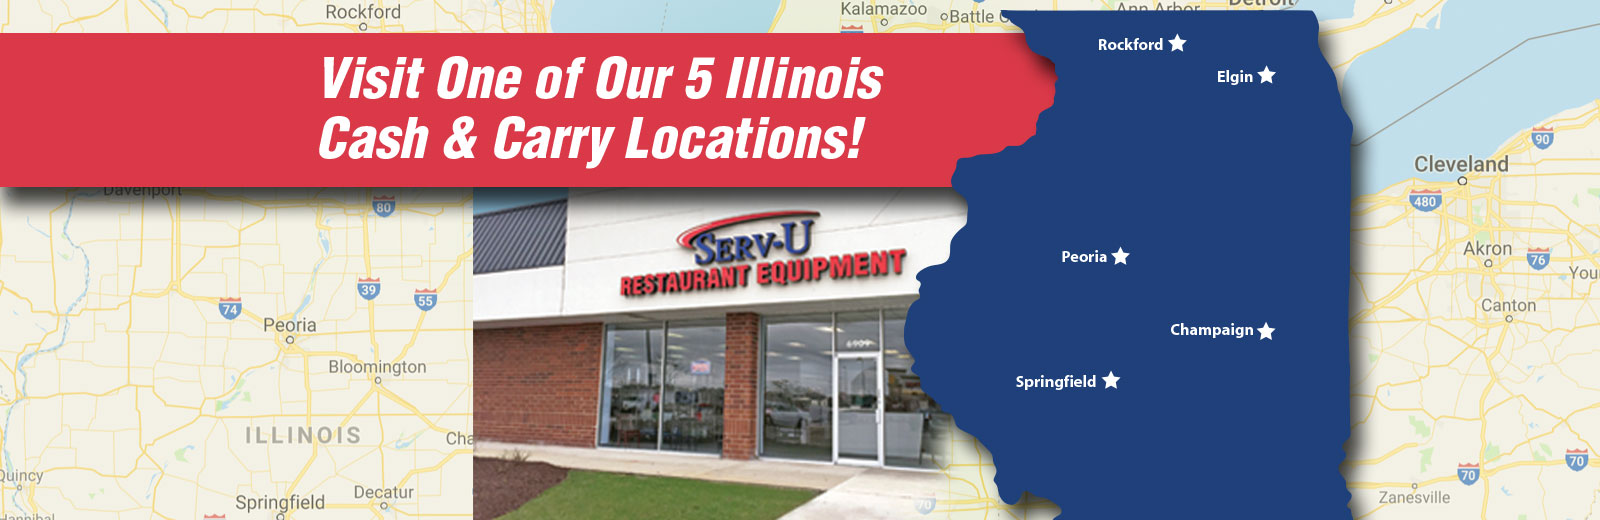 Visit One of Our 5 Illinois Locations